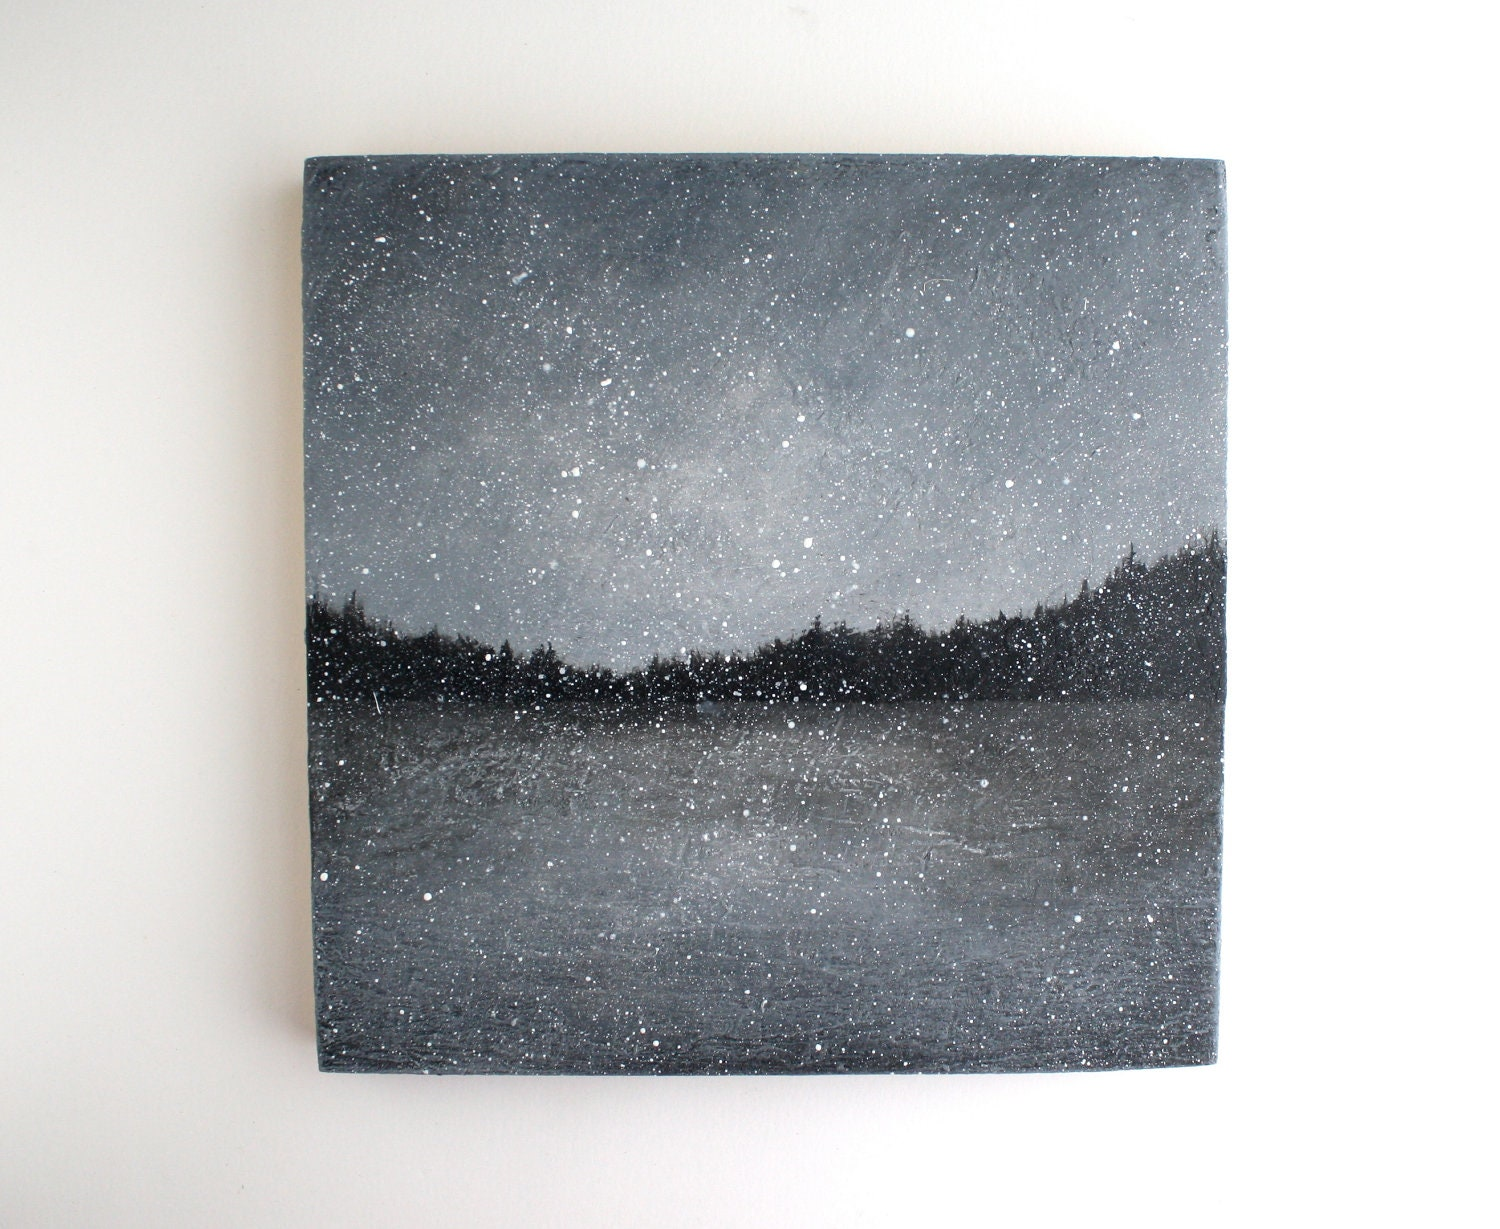 Snowfall - Black and White Oil Painting - 8 x 8